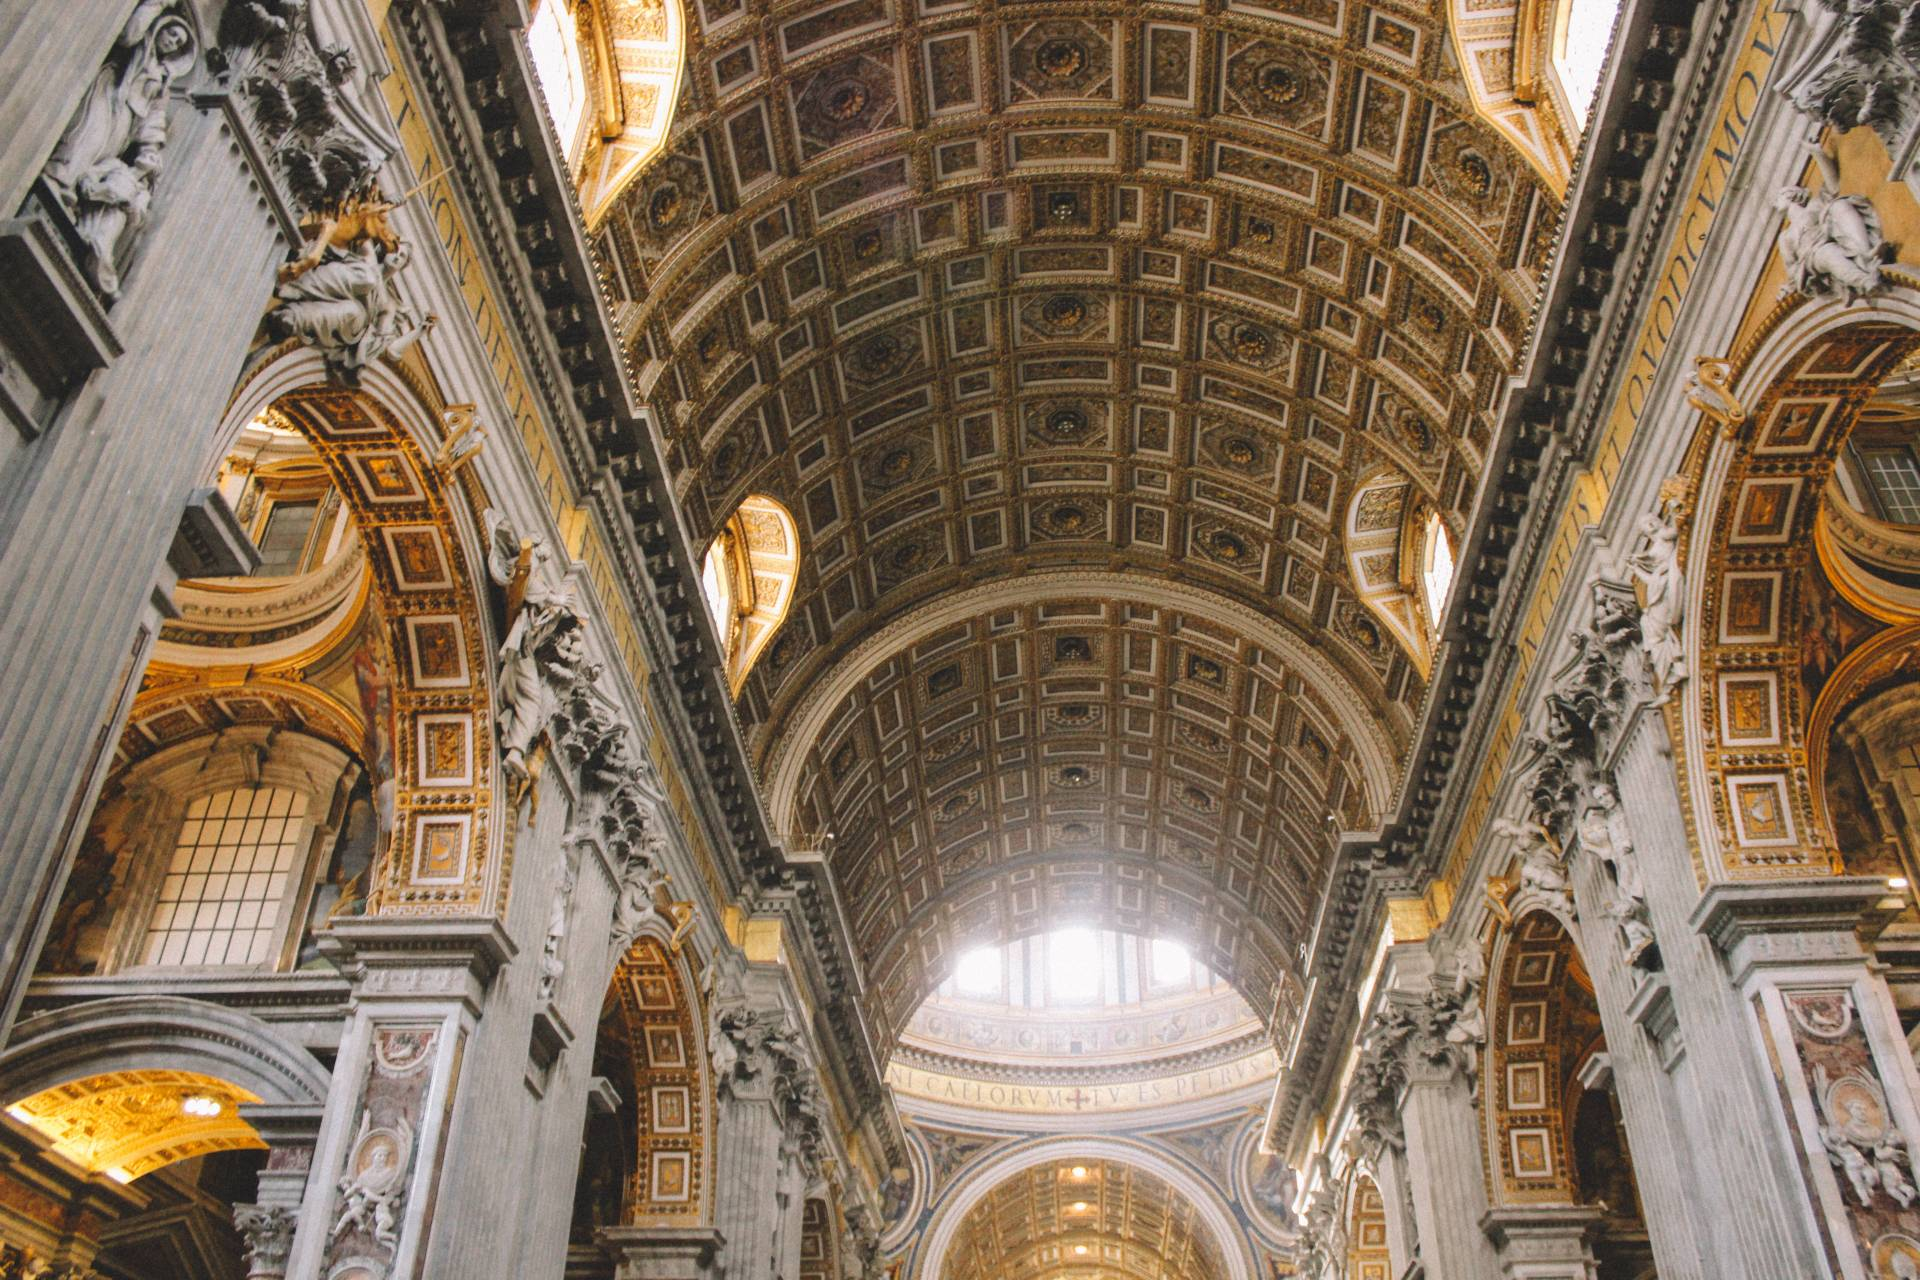 Inside St. Peter's Basilica, Vatican City